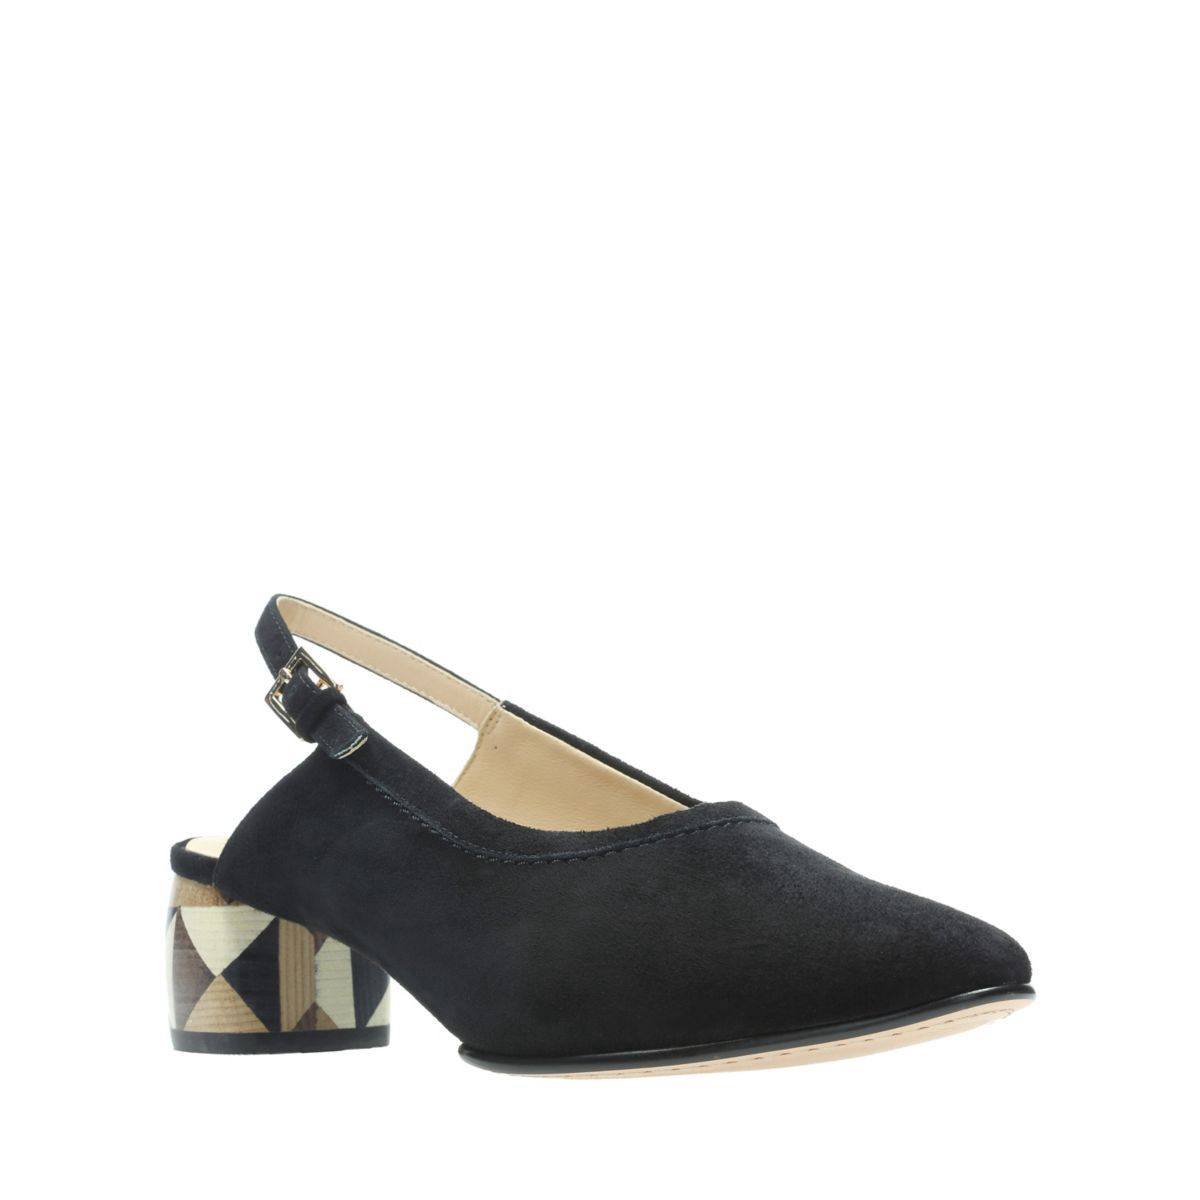 bbd869bf37ca Clarks Grace Amelia - Womens Shoes Black Suede 6.5